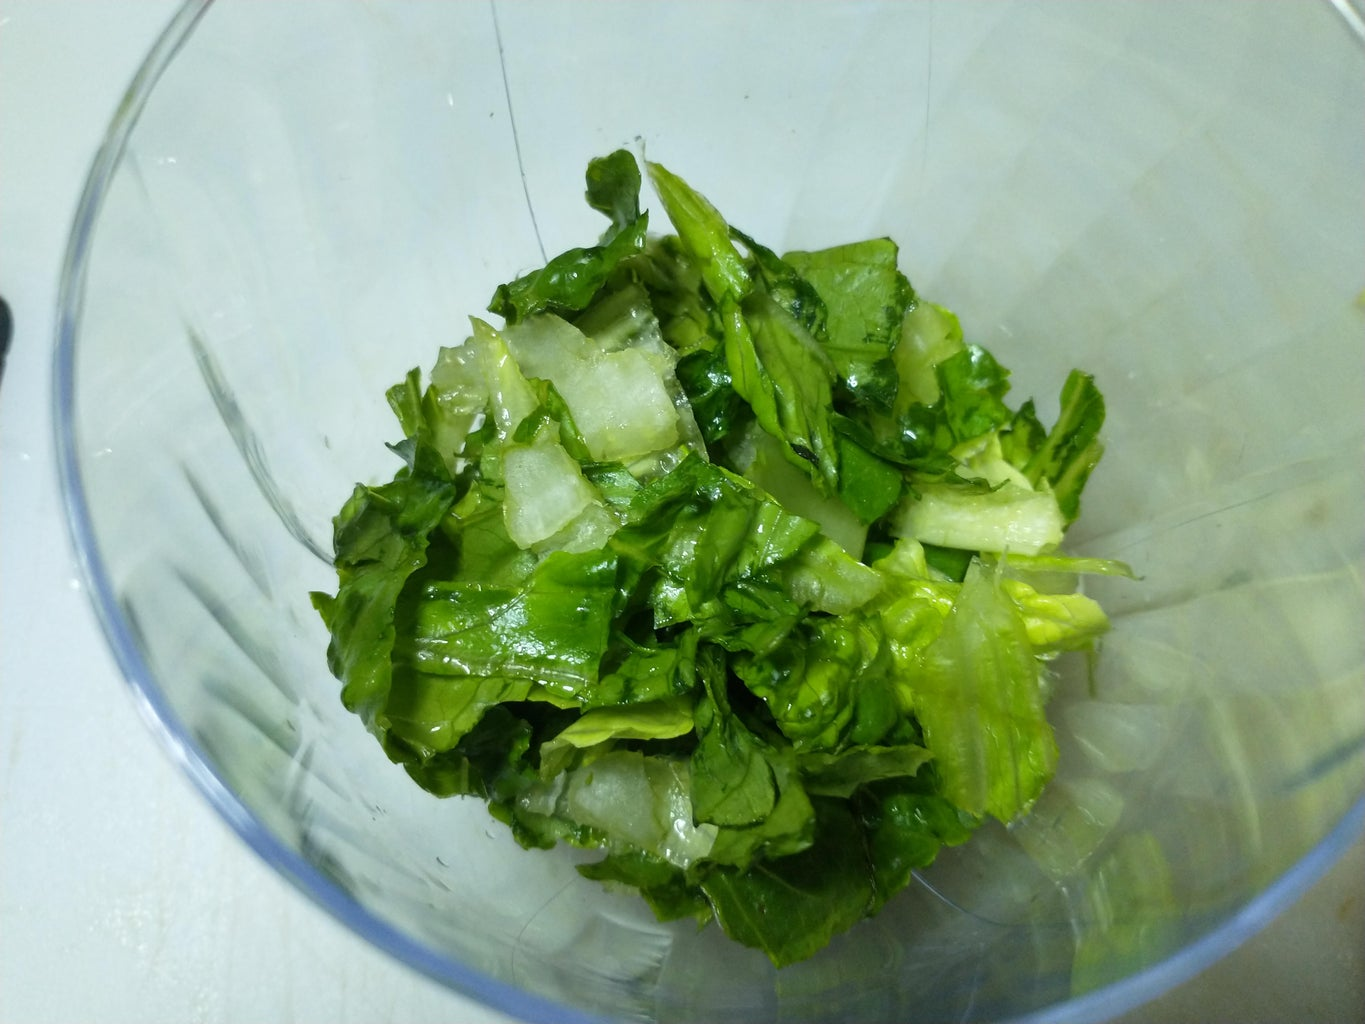 Cut Up the Romaine Leaf Into Small Pieces and Add to Bottom of Salad